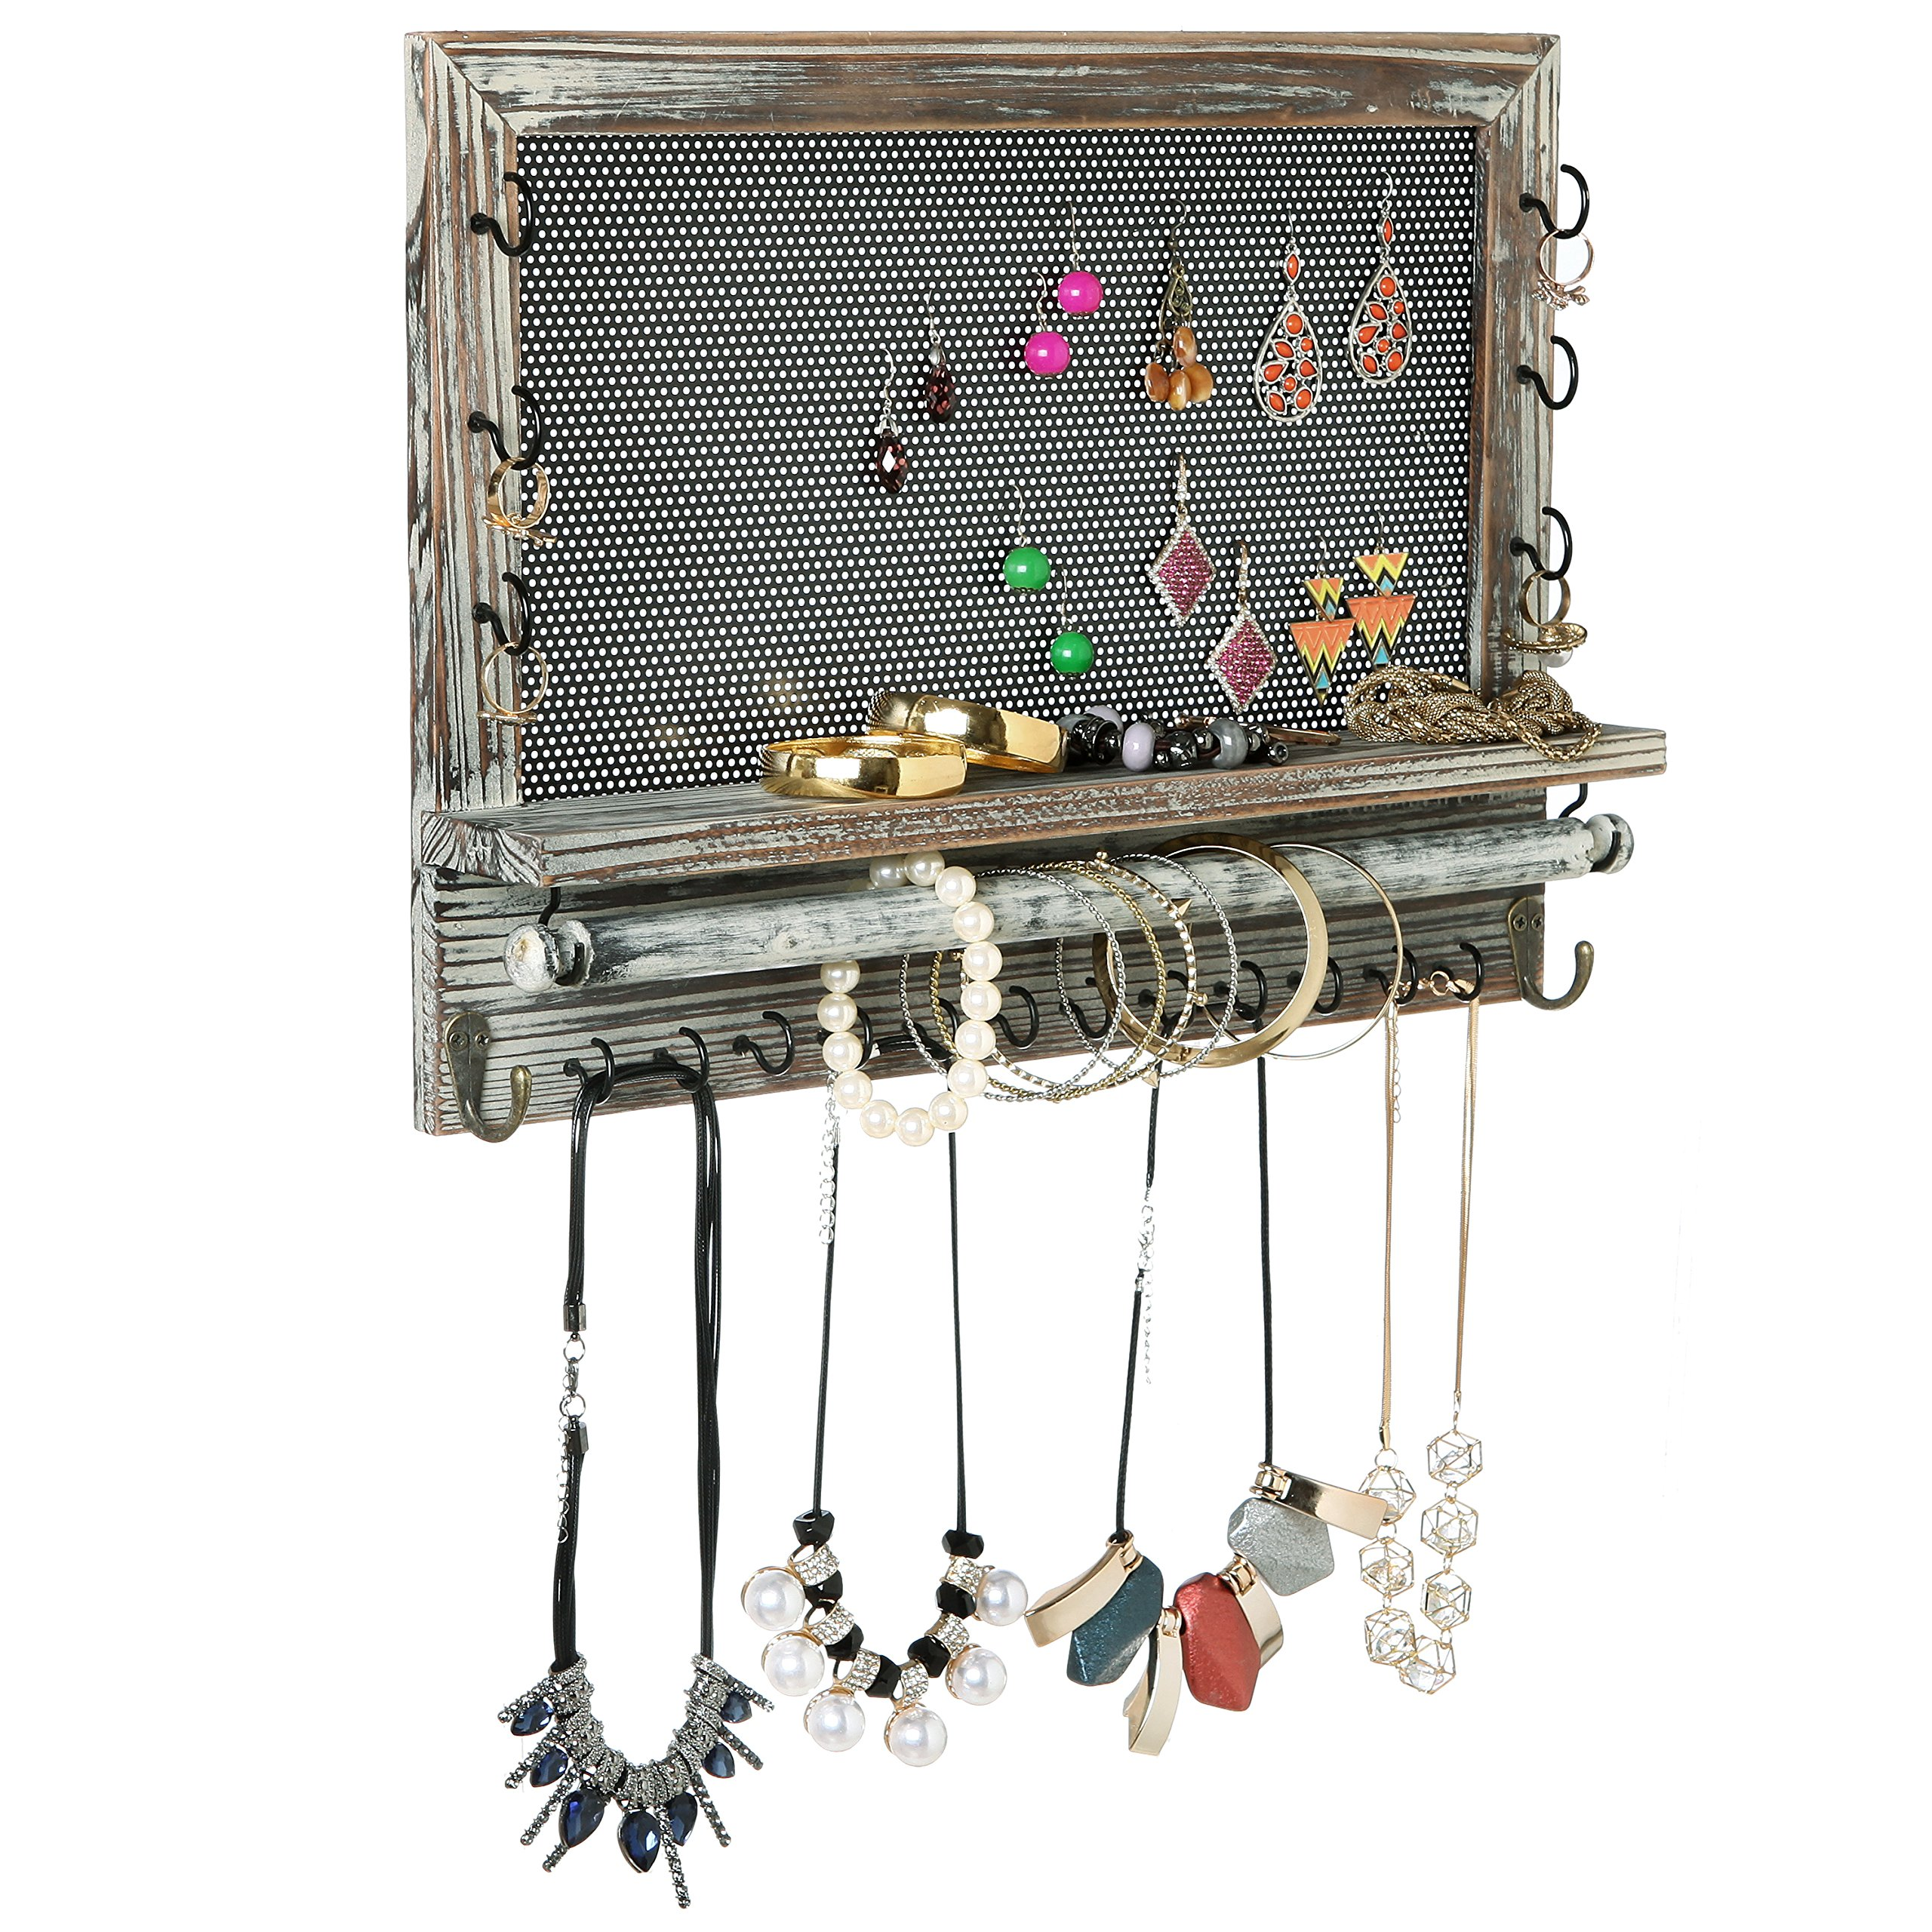 Rustic Wood & Metal Mesh Wall Mounted Jewelry Hanger, Necklaces, Bracelets & Earrings Organizer Rack by MyGift (Image #1)